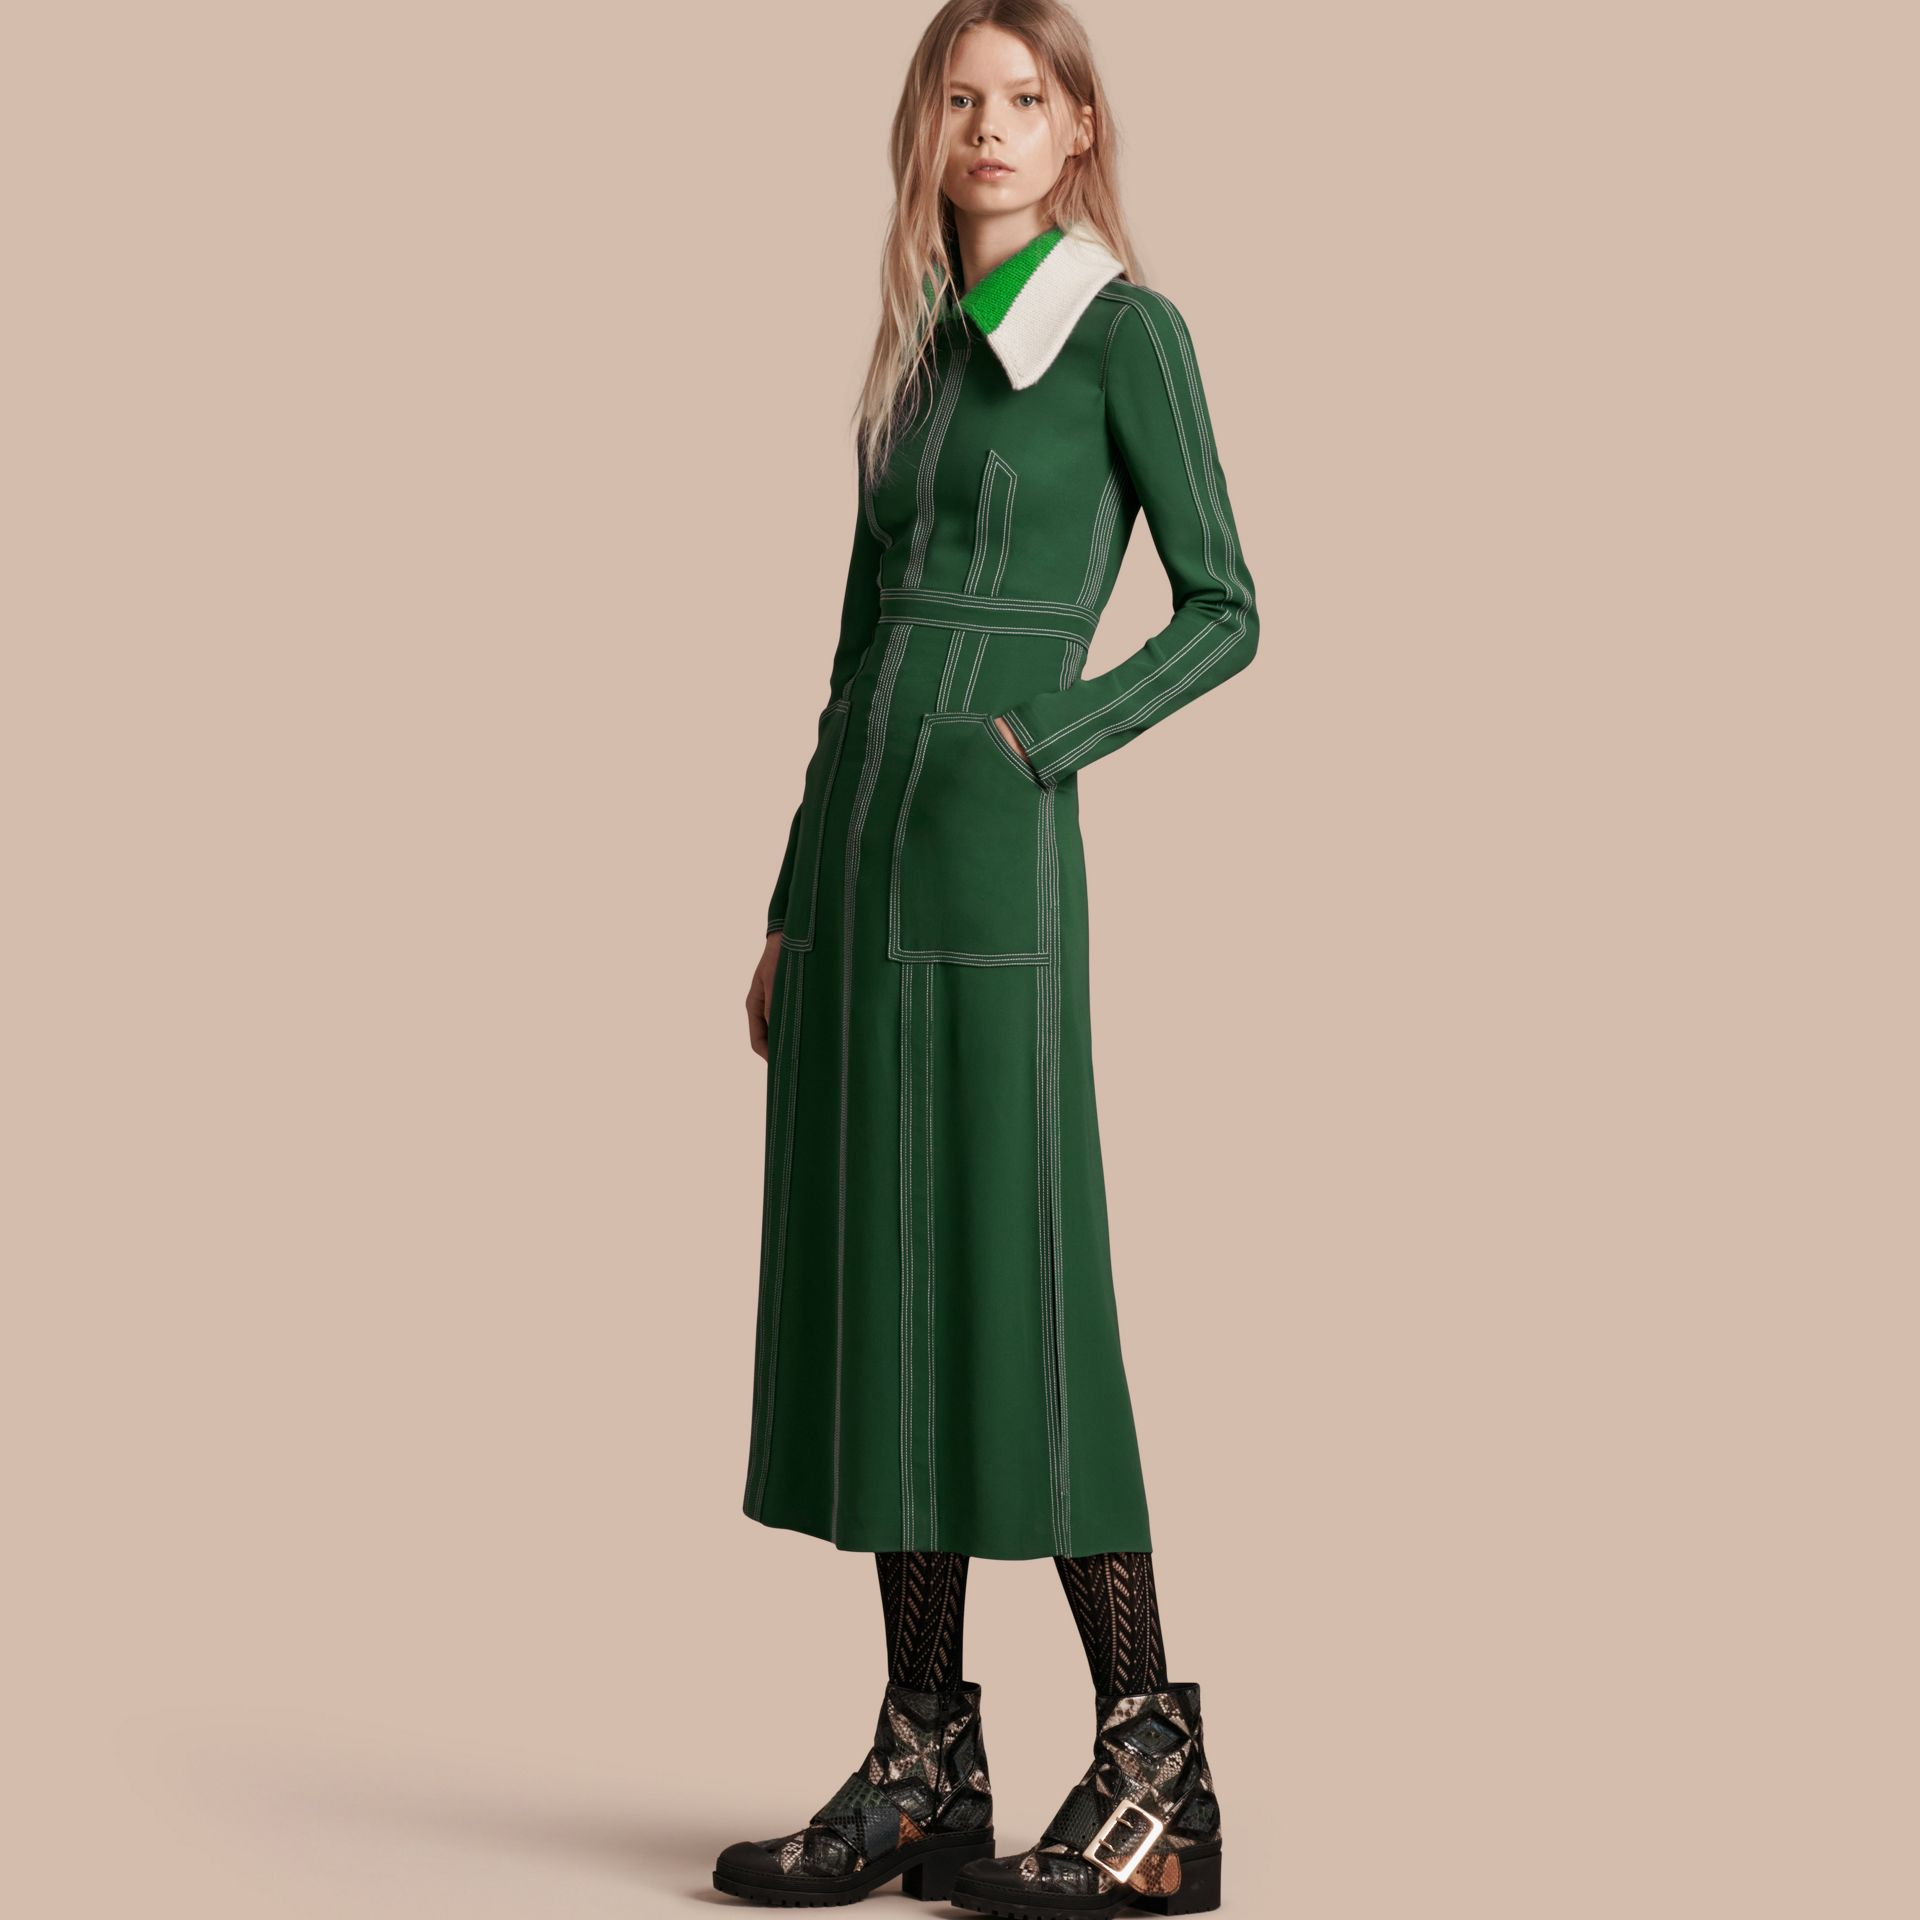 Deep green Topstitch Detail Georgette Dress with Knitted Collar - gallery image 1